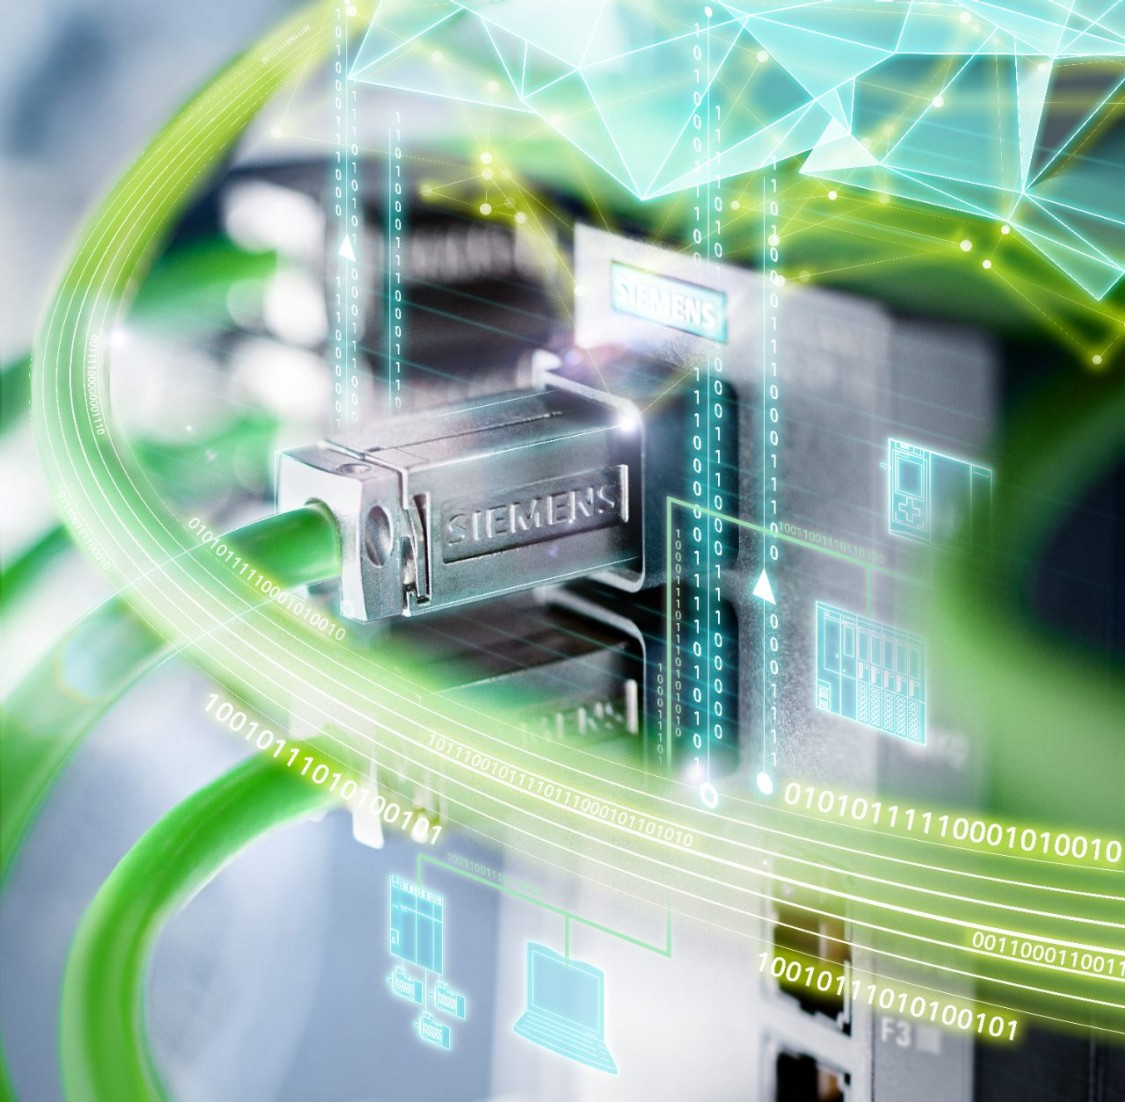 Close-up of green PROFINET cables. Some of them are plugged into hardware. The setting is  dramatized with a blurry green layer which visualizes the ubiquitous digitalization.